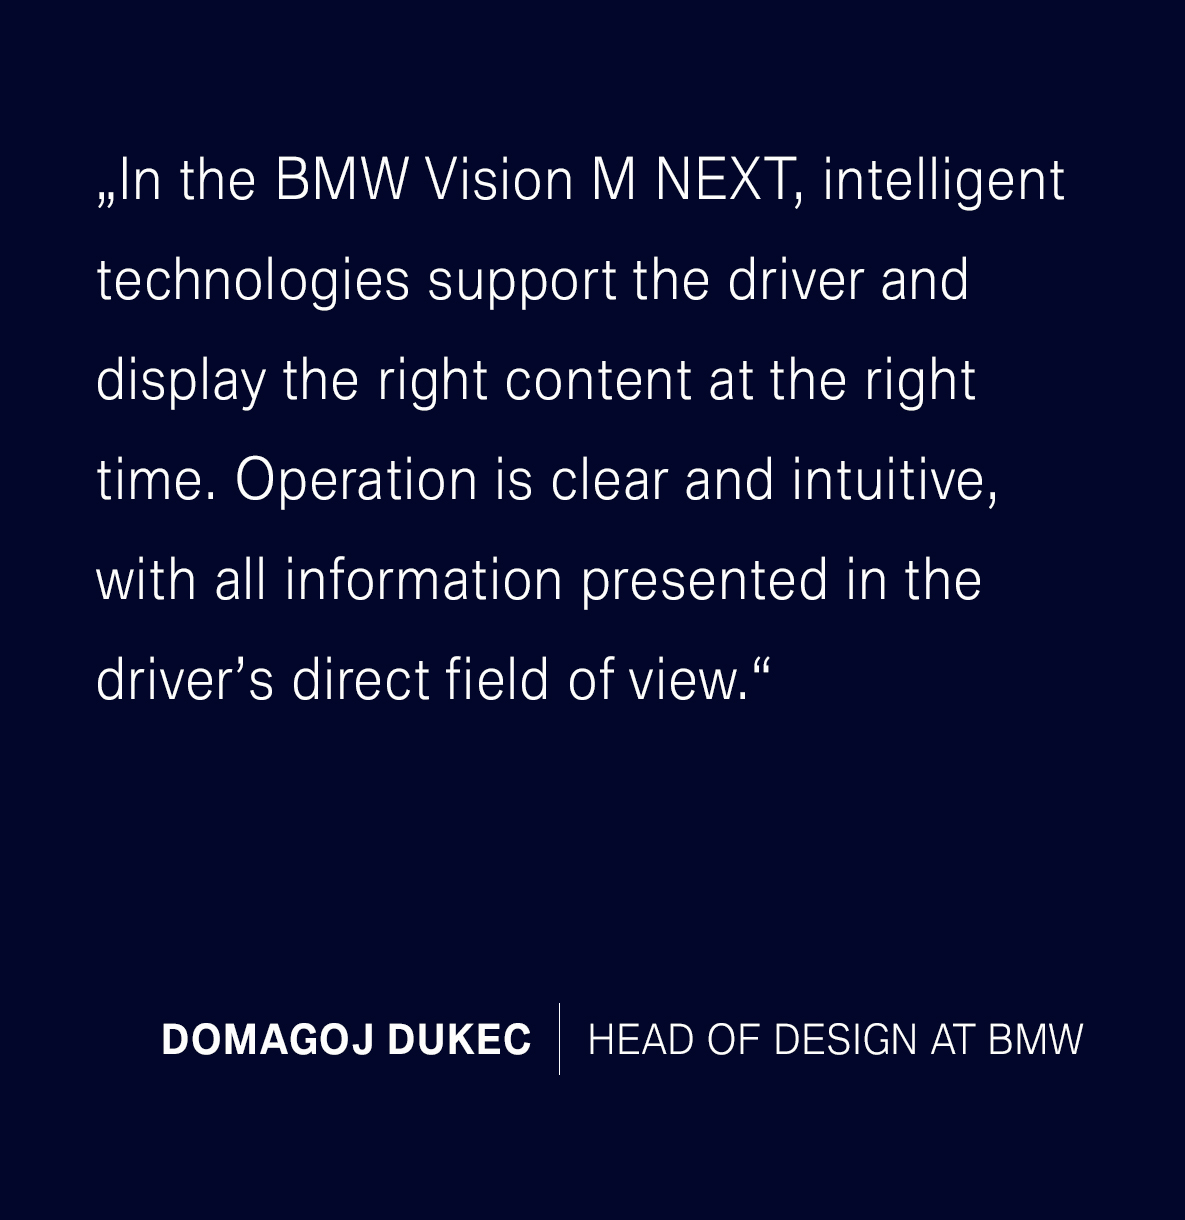 BMW Vision M Next Quote